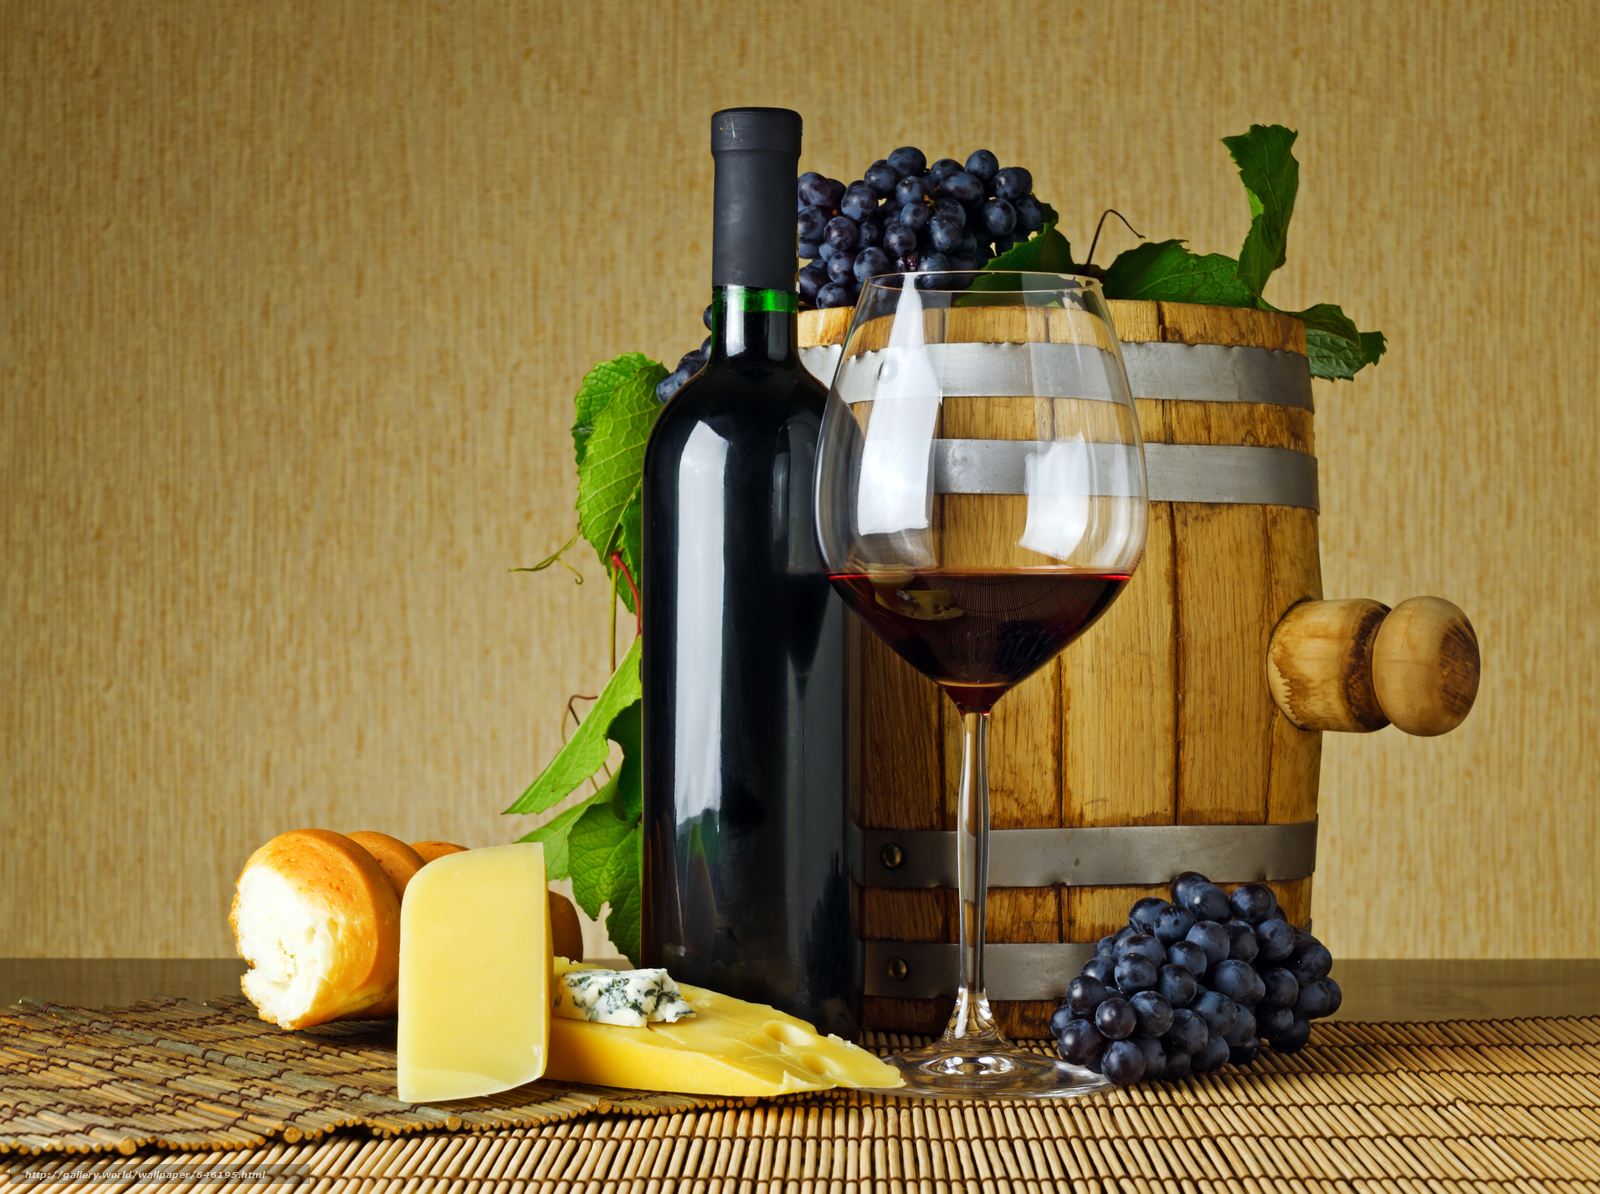 Download wallpaper table,  wine,  grapes,  Bakaly free desktop wallpaper in the resolution 4349x3246 — picture №646195